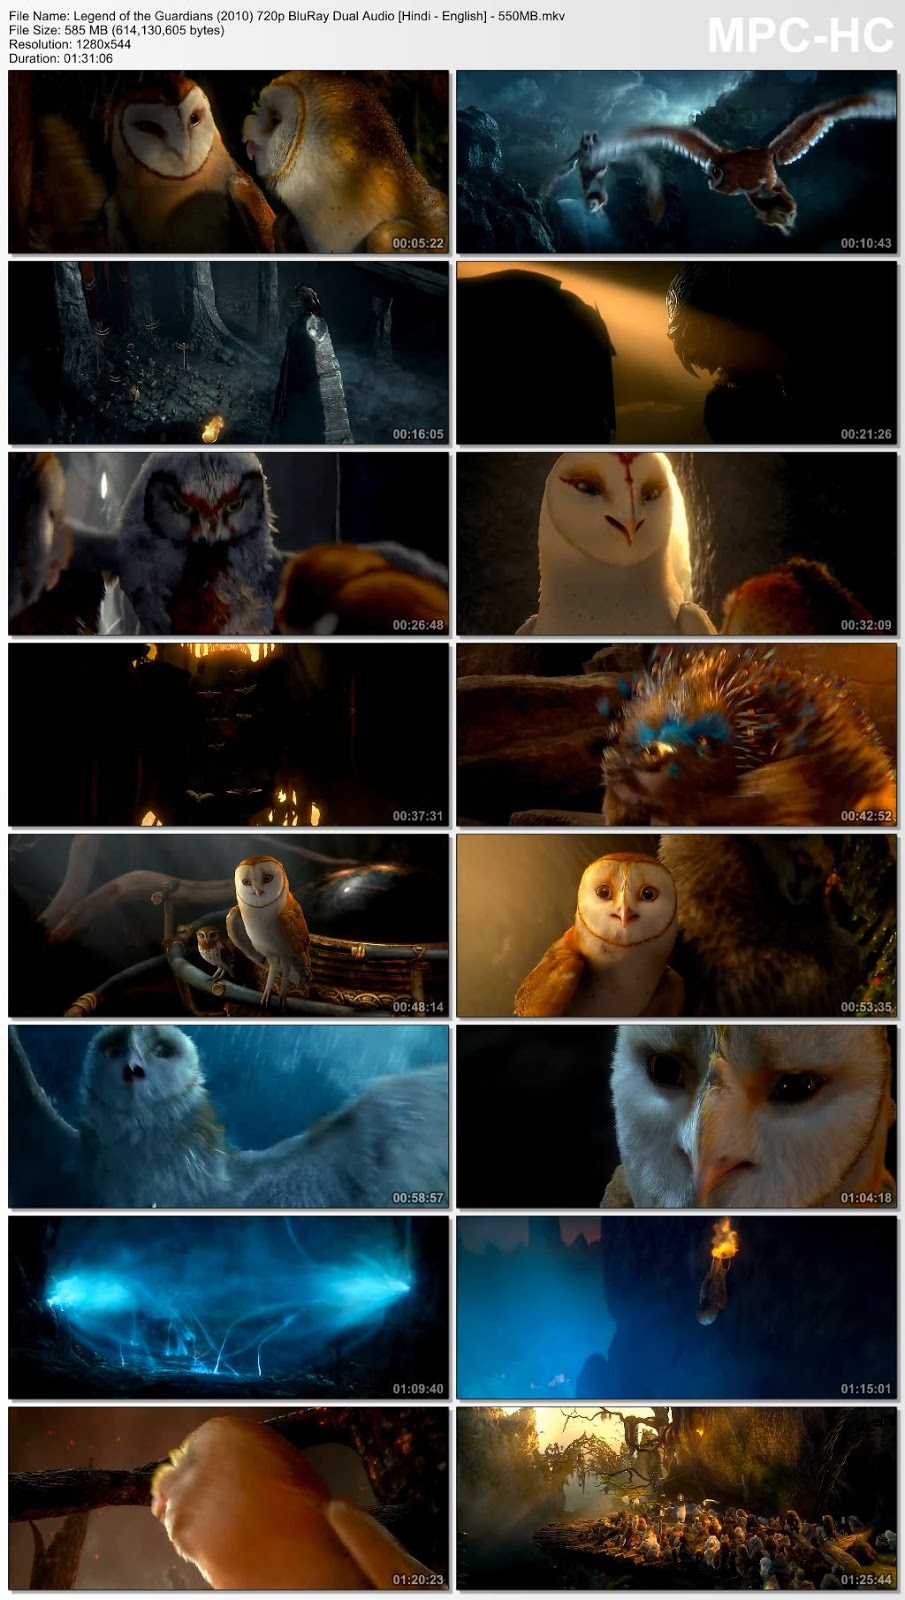 Legend of the Guardians (2010) 720p BluRay Dual Audio [Hindi – English] – 550MB Desirehub